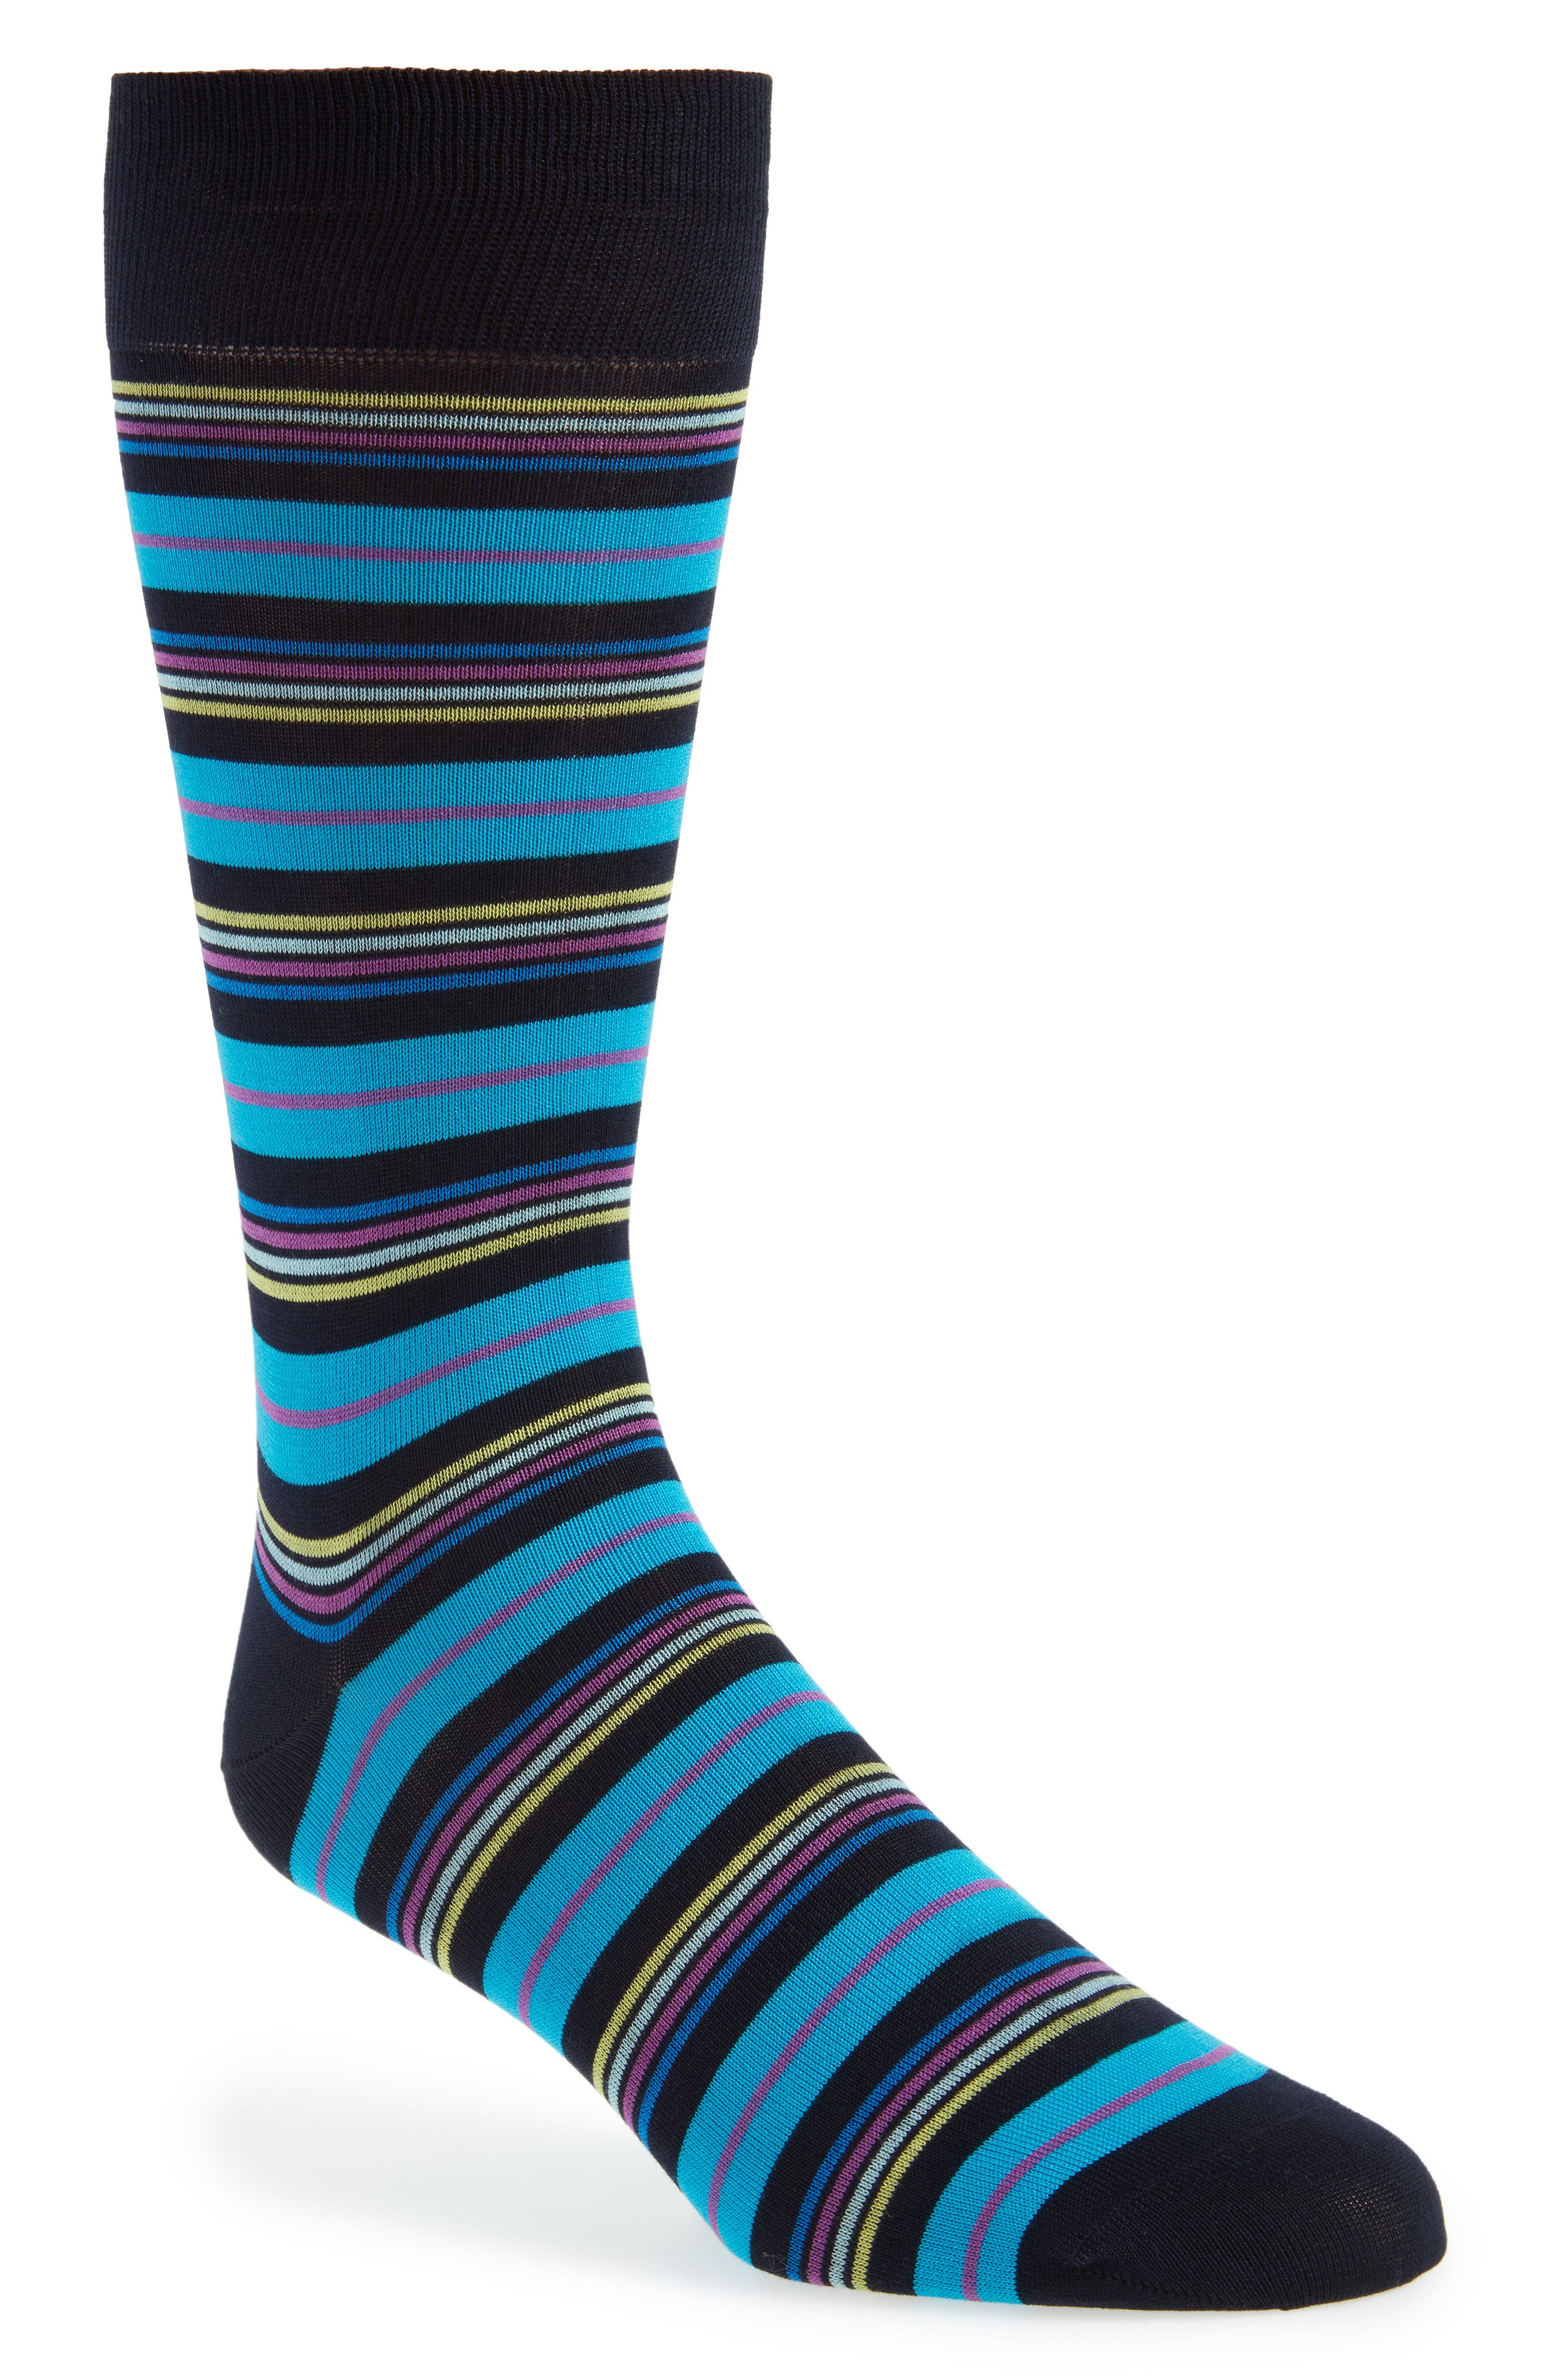 Multistripe Socks,                         Main,                         color, Navy